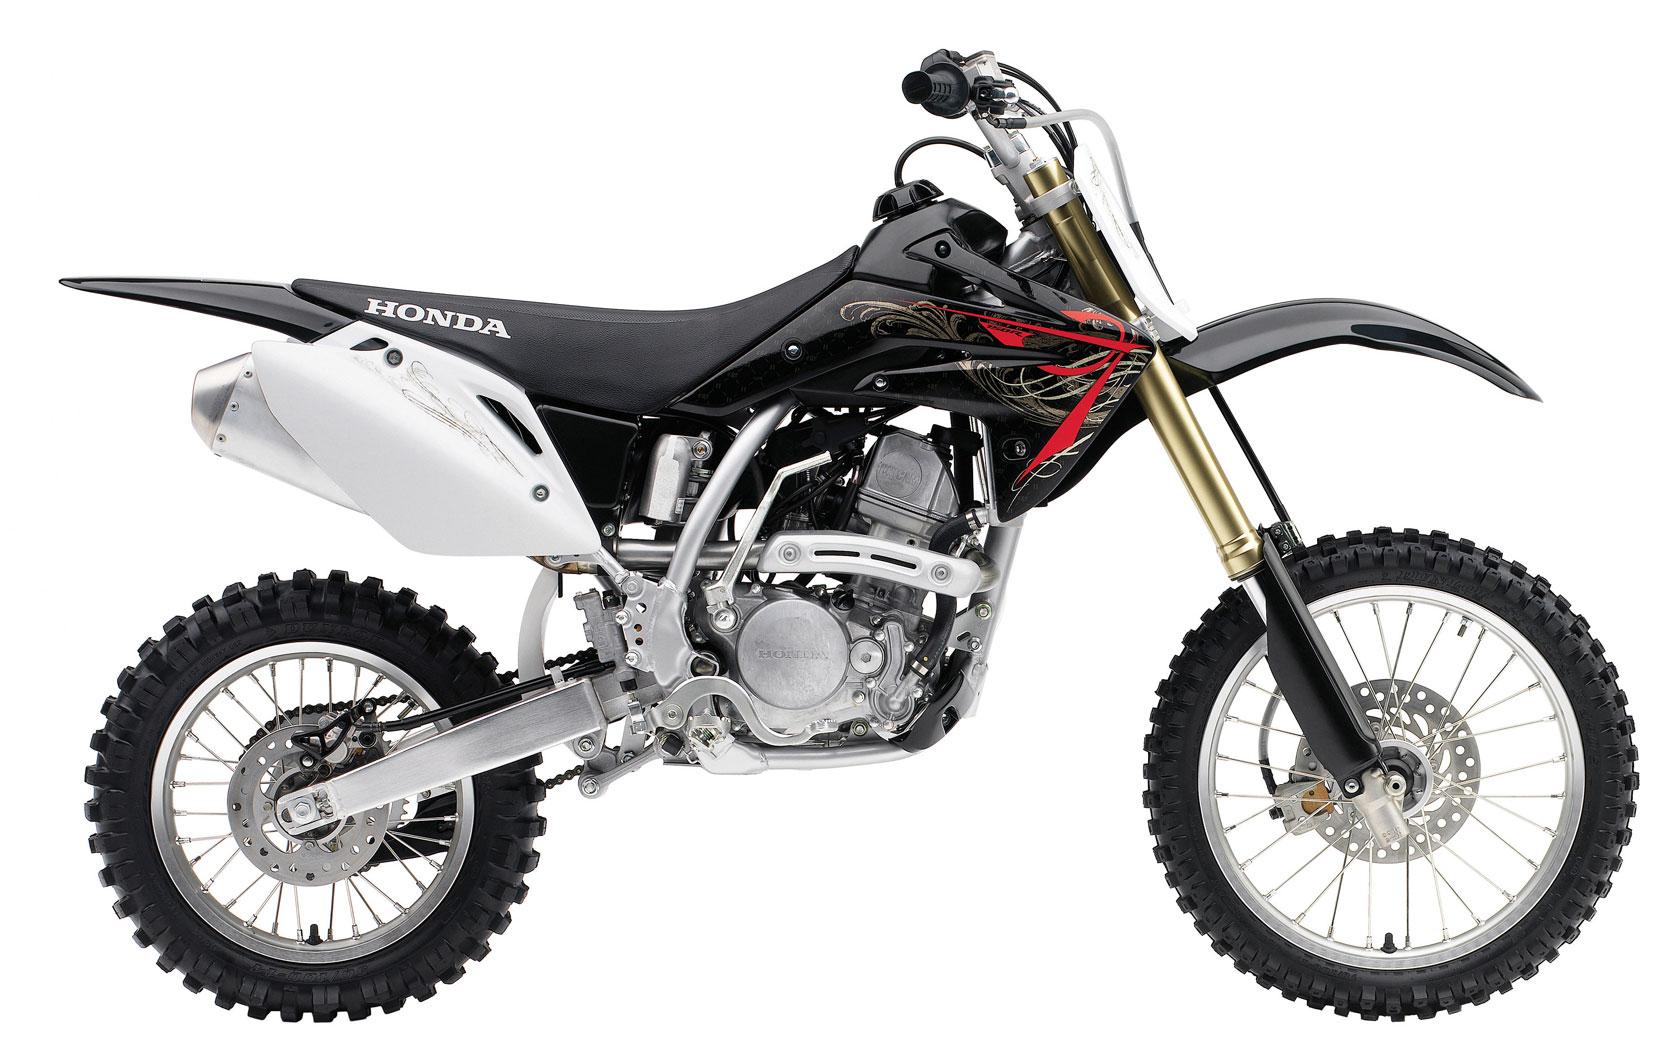 Honda crf150f photo - 3